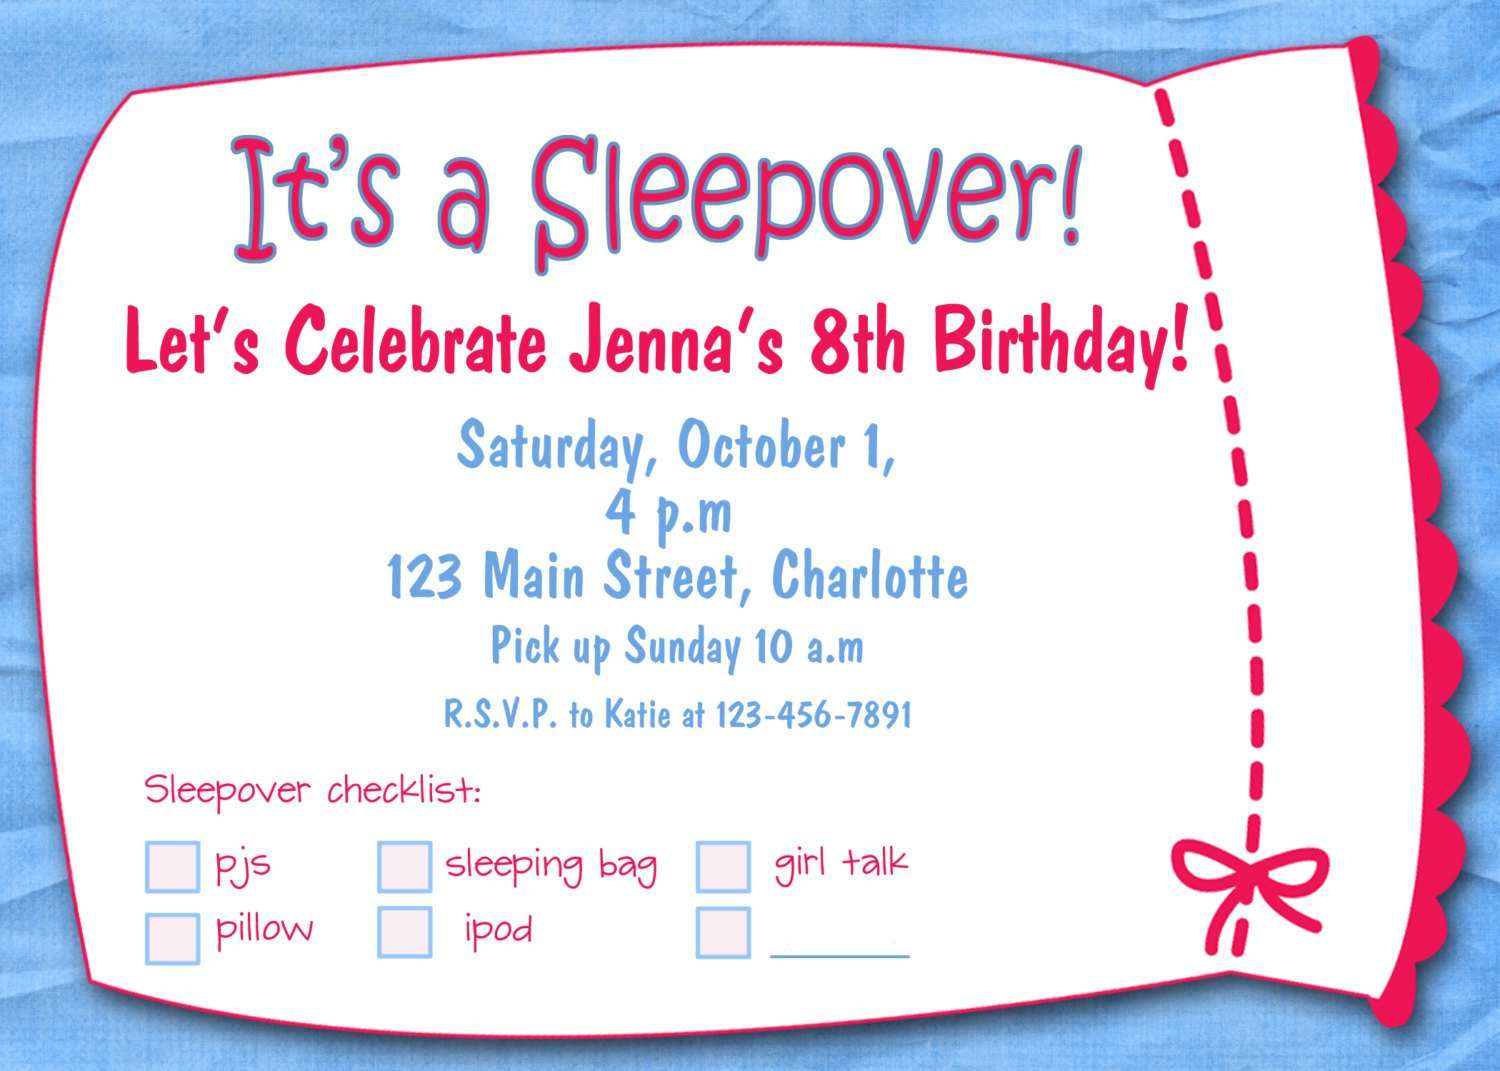 Printable sleepover birthday party invitations girls free printable sleepover birthday party invitations girls stopboris Image collections